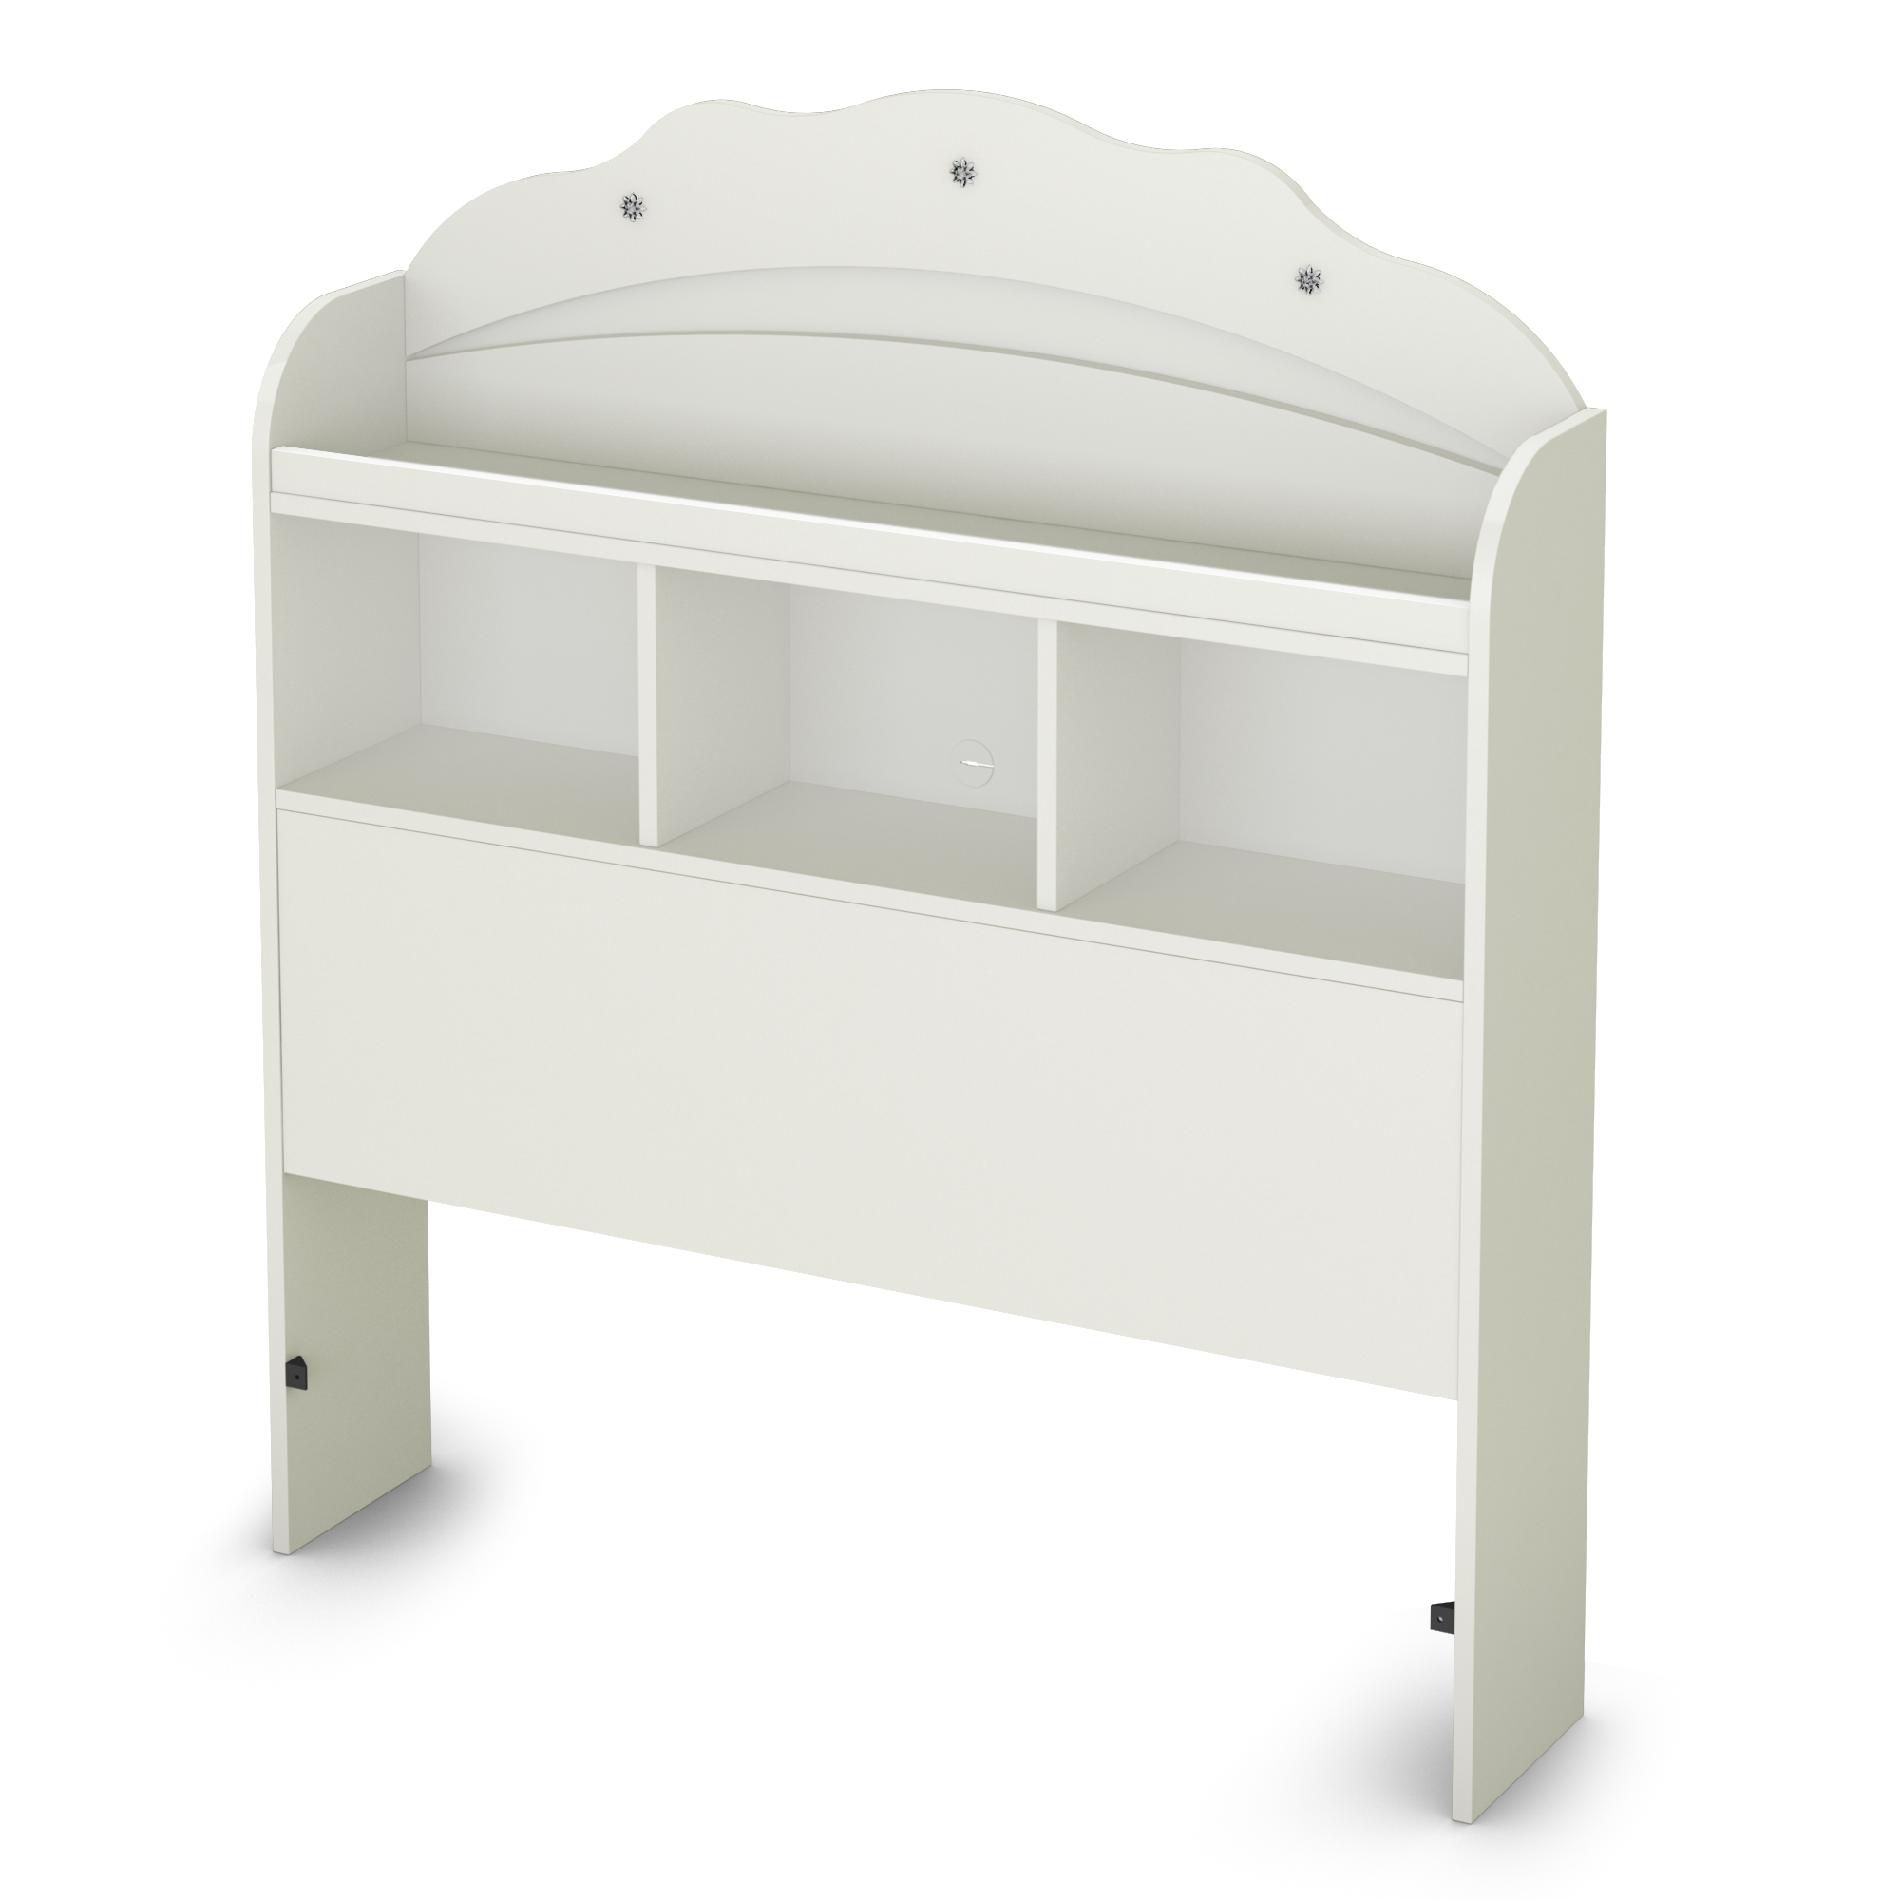 South Shore Tiara Collection Twin 39 Inch Bookcase Headboard